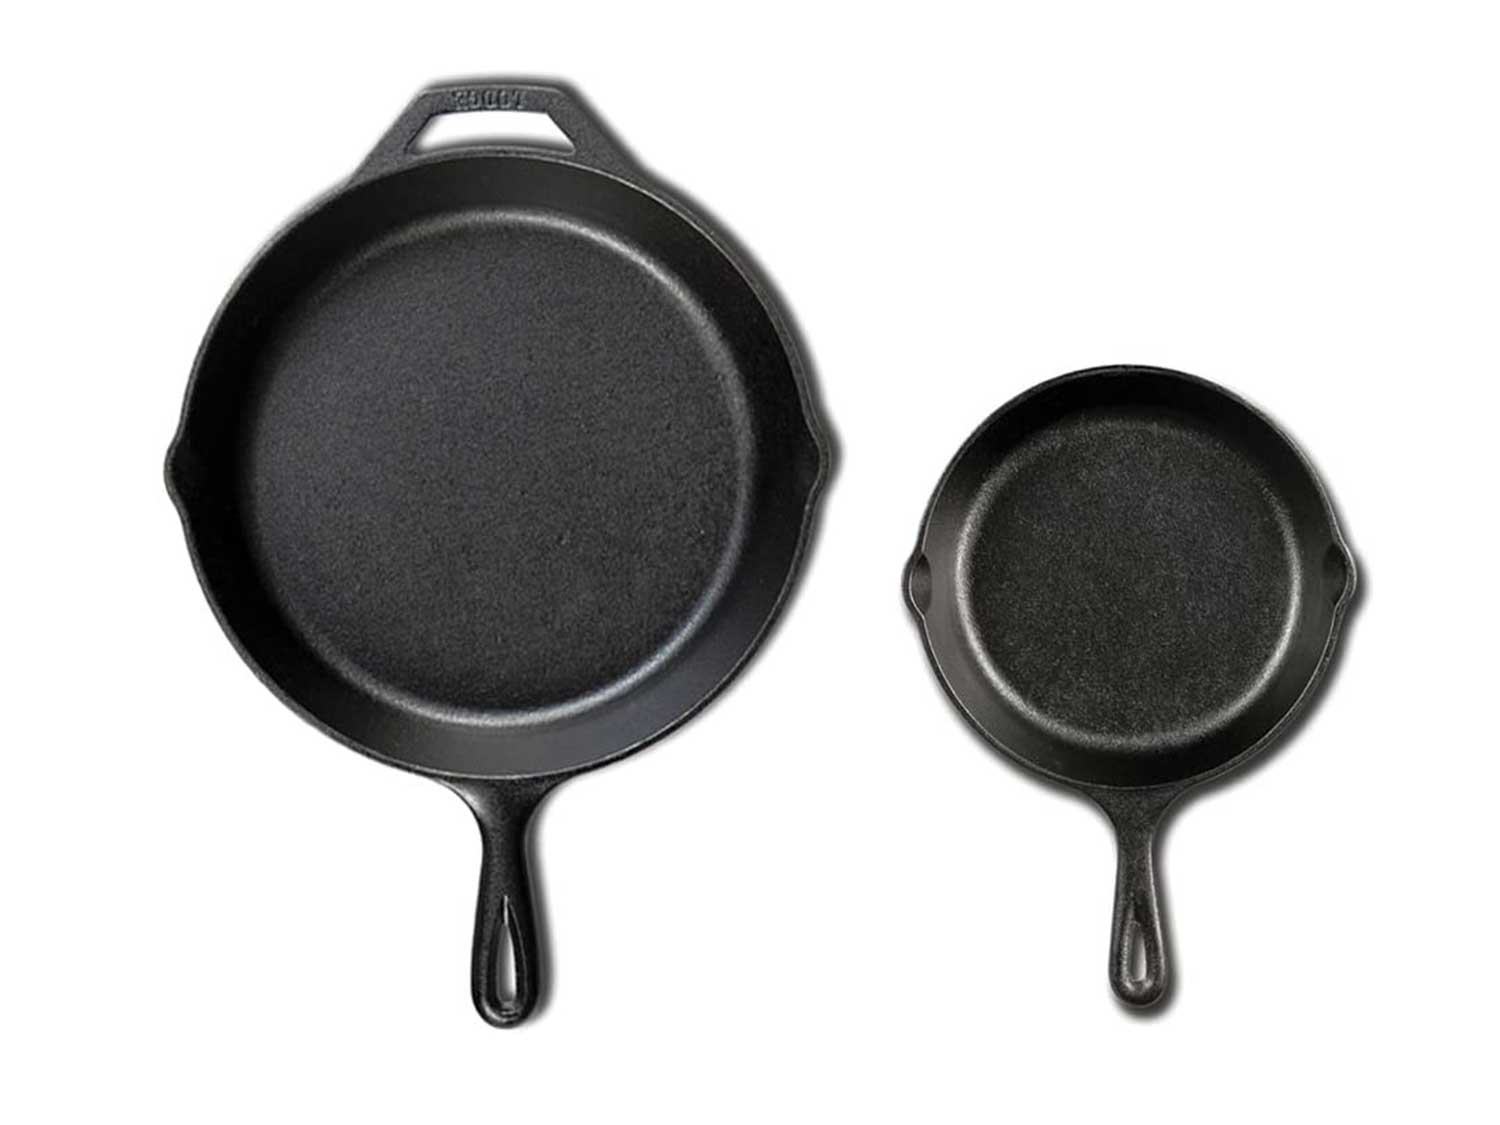 Lodge Seasoned Cast Iron Cookware Set. 2 Piece Skillet Set. (10.25 inches and 6.5 inches)